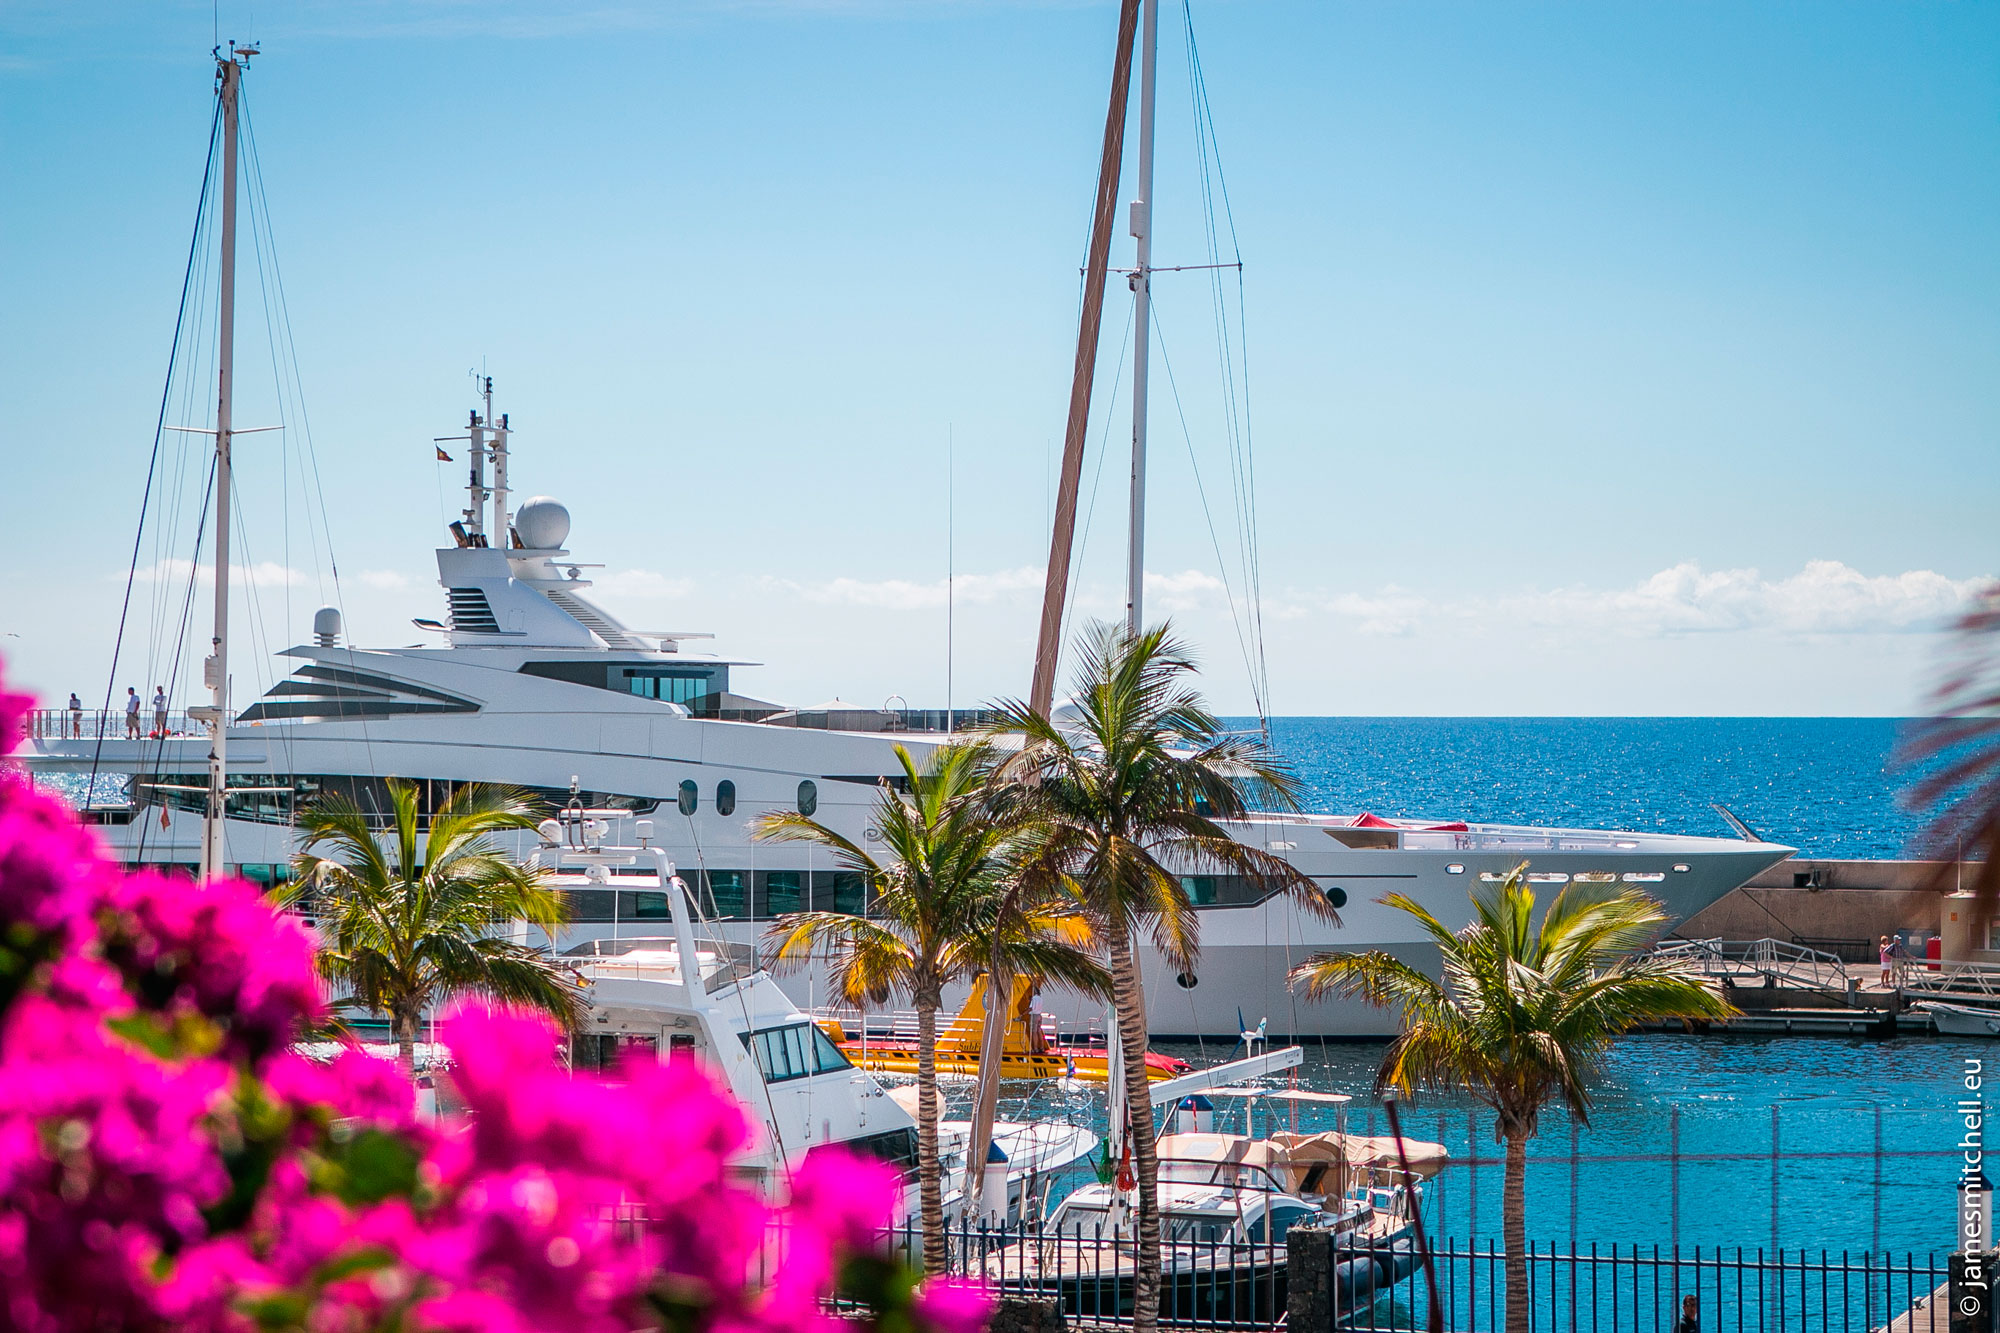 White yacht pulling out of the marina with beautiful native pink flowers and palm trees in the foreground.